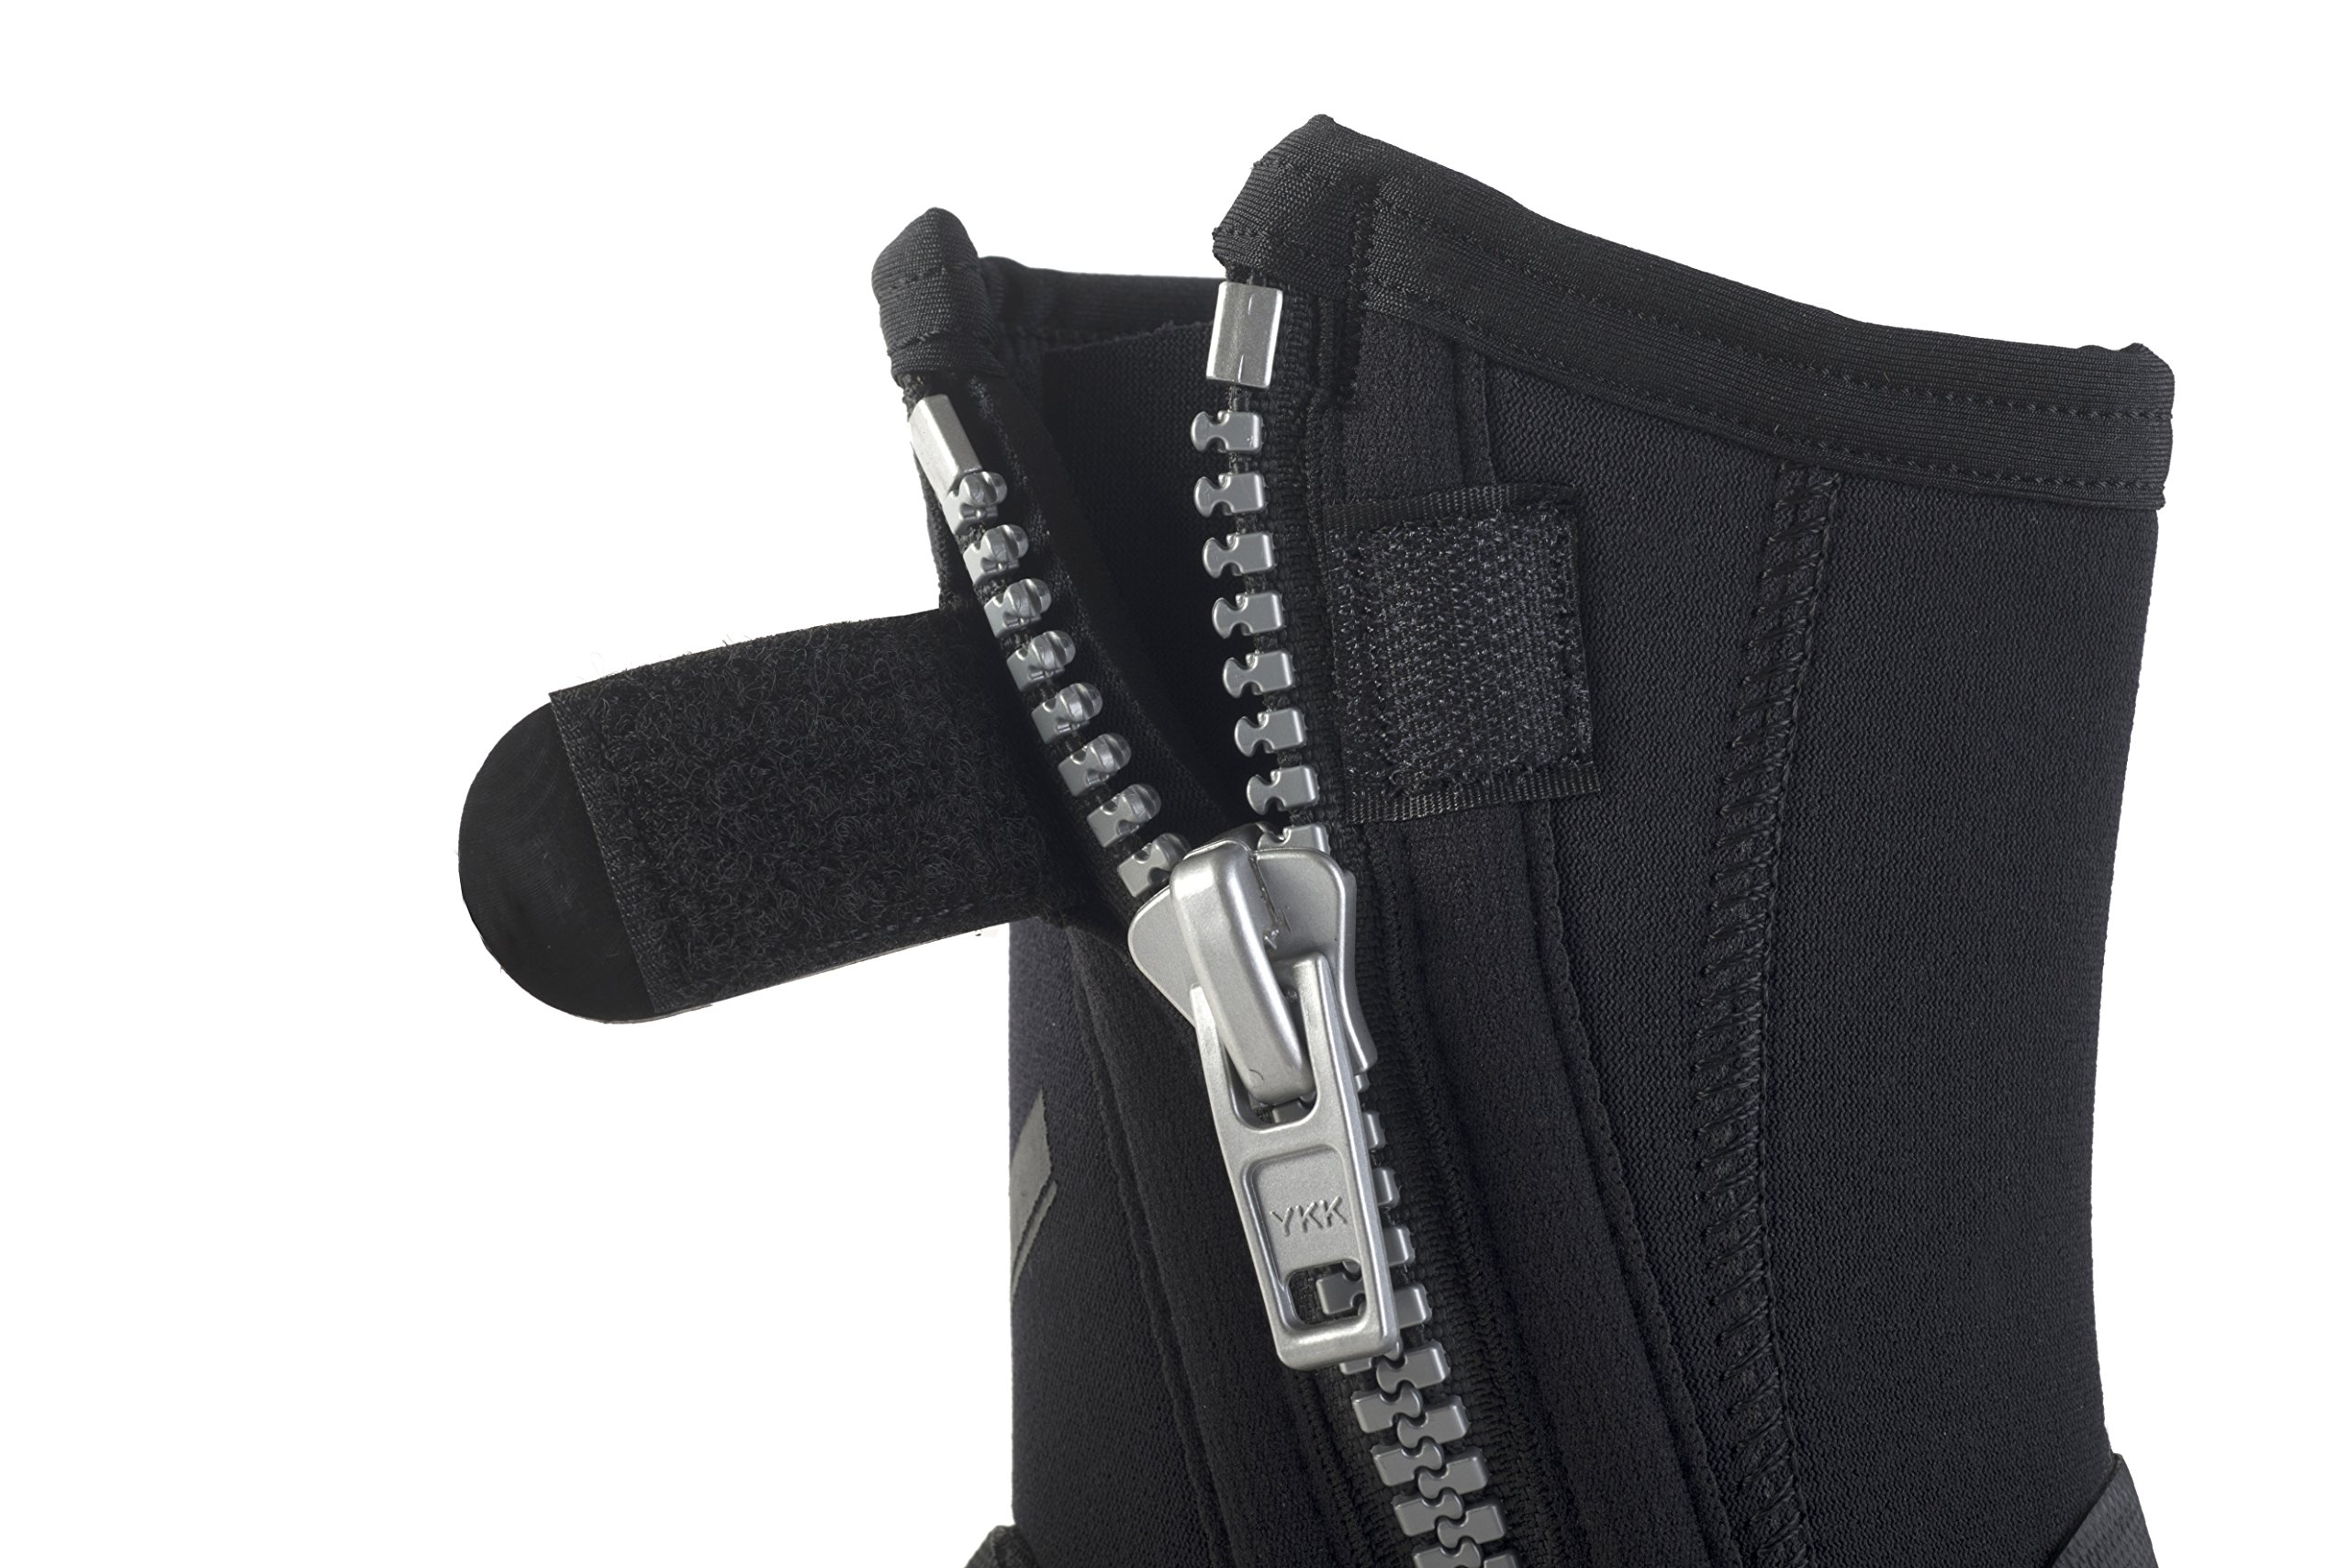 SEAC Pro HD 6mm Neoprene Wetsuit Boots with Side Zipper, Large by SEAC